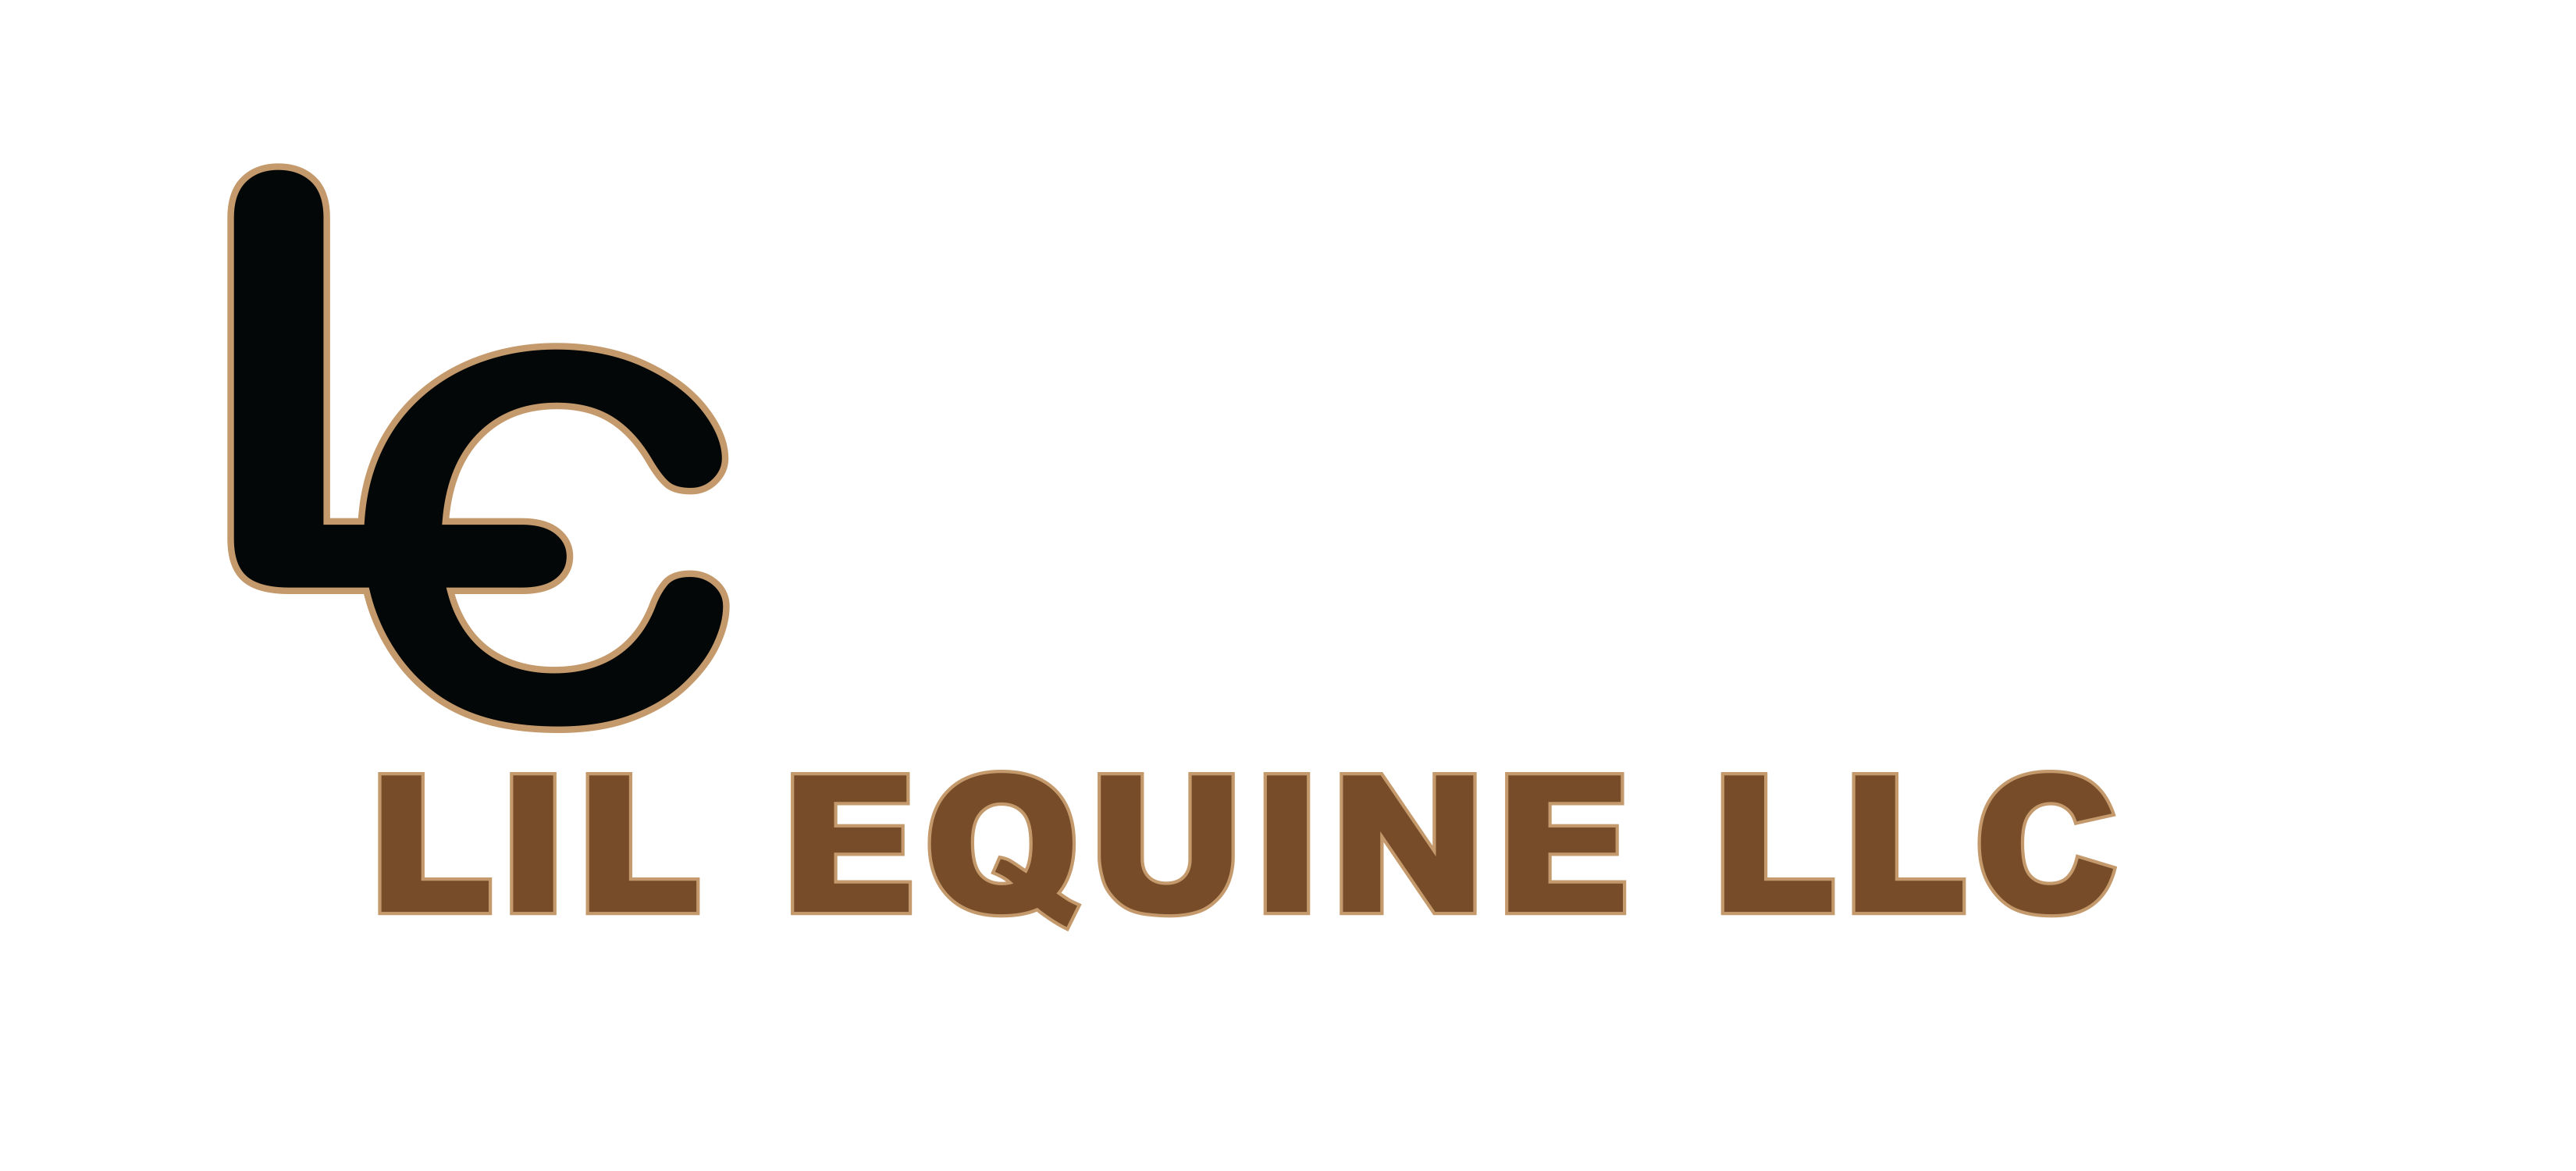 Lil Equine LLC Logo Final